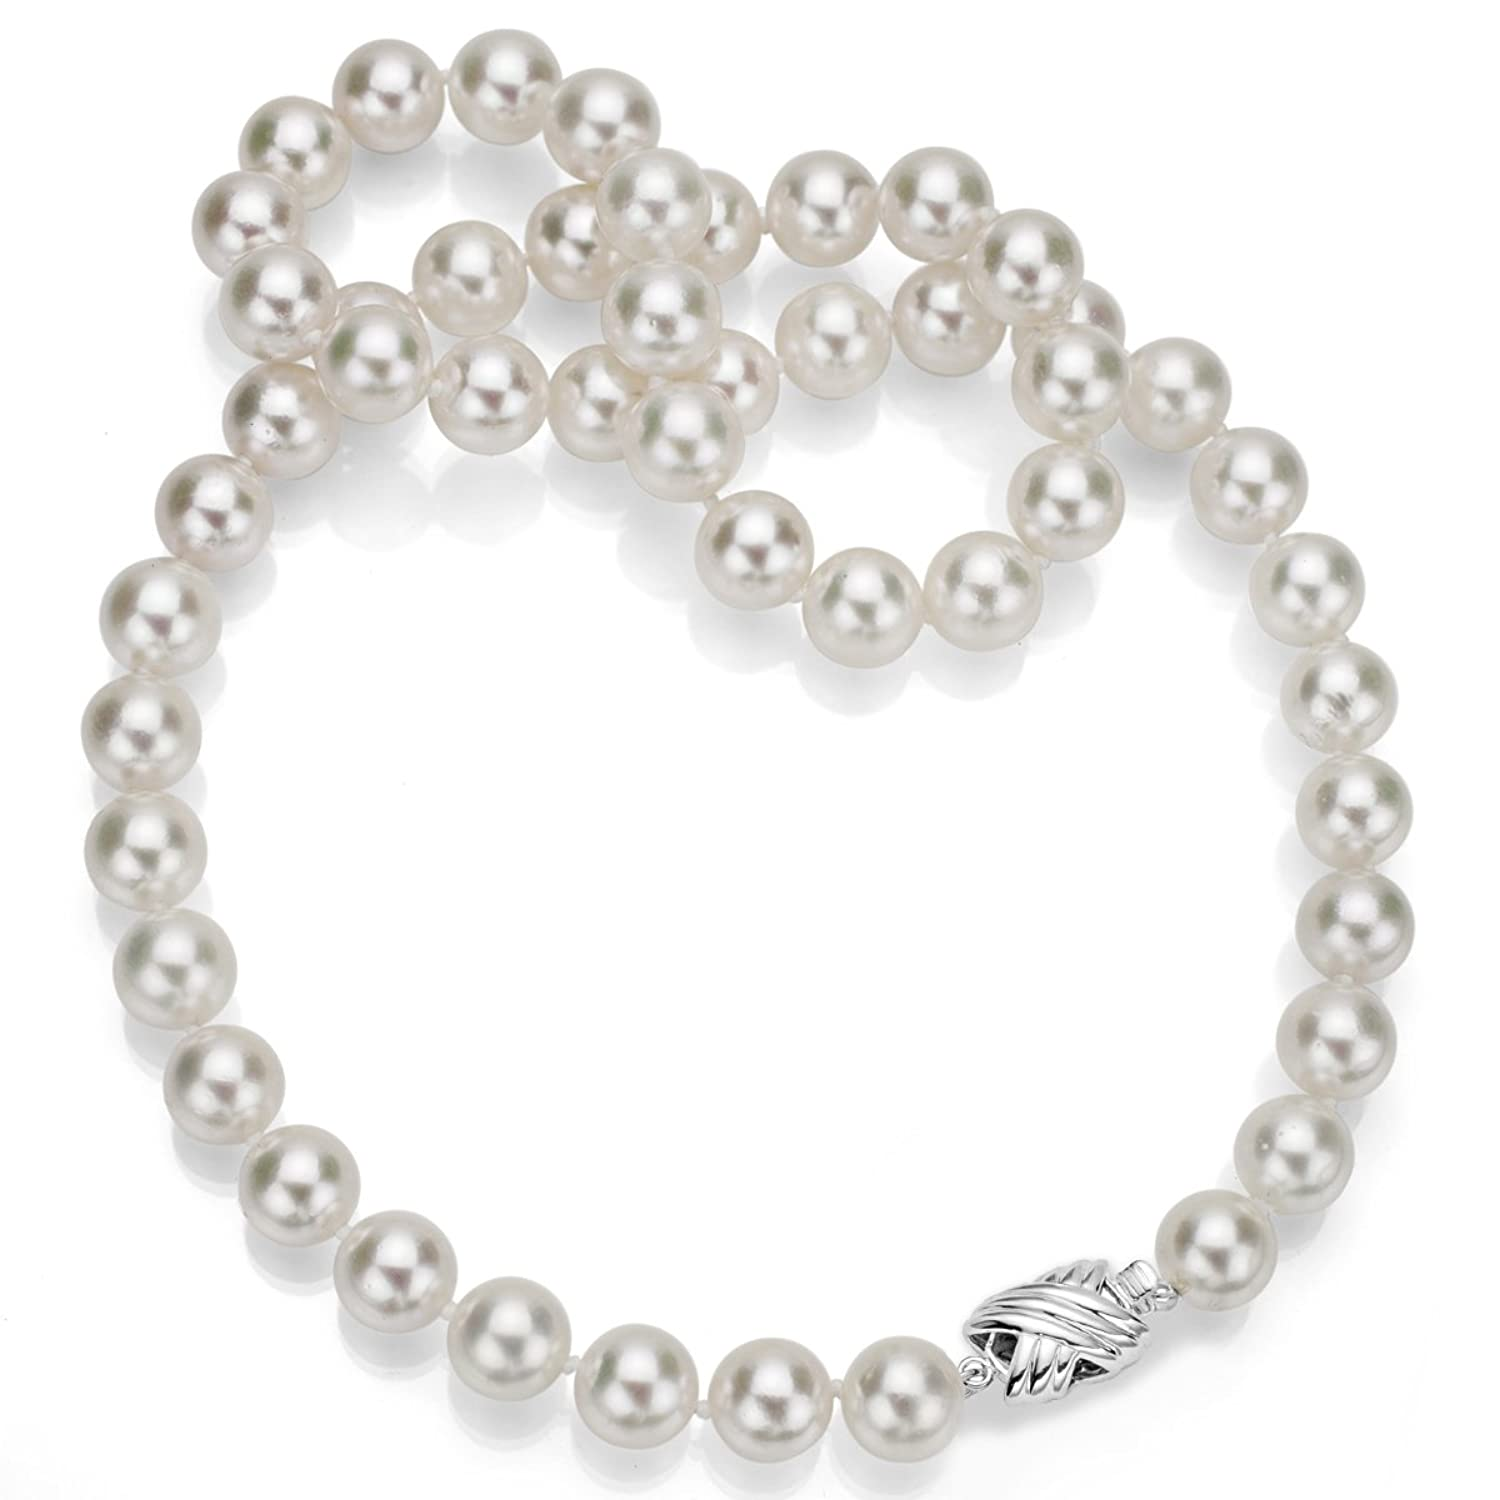 14k White Gold Aaa White Japanese Akoya Cultured Pearl Doublesided Clasp  Necklace, 18